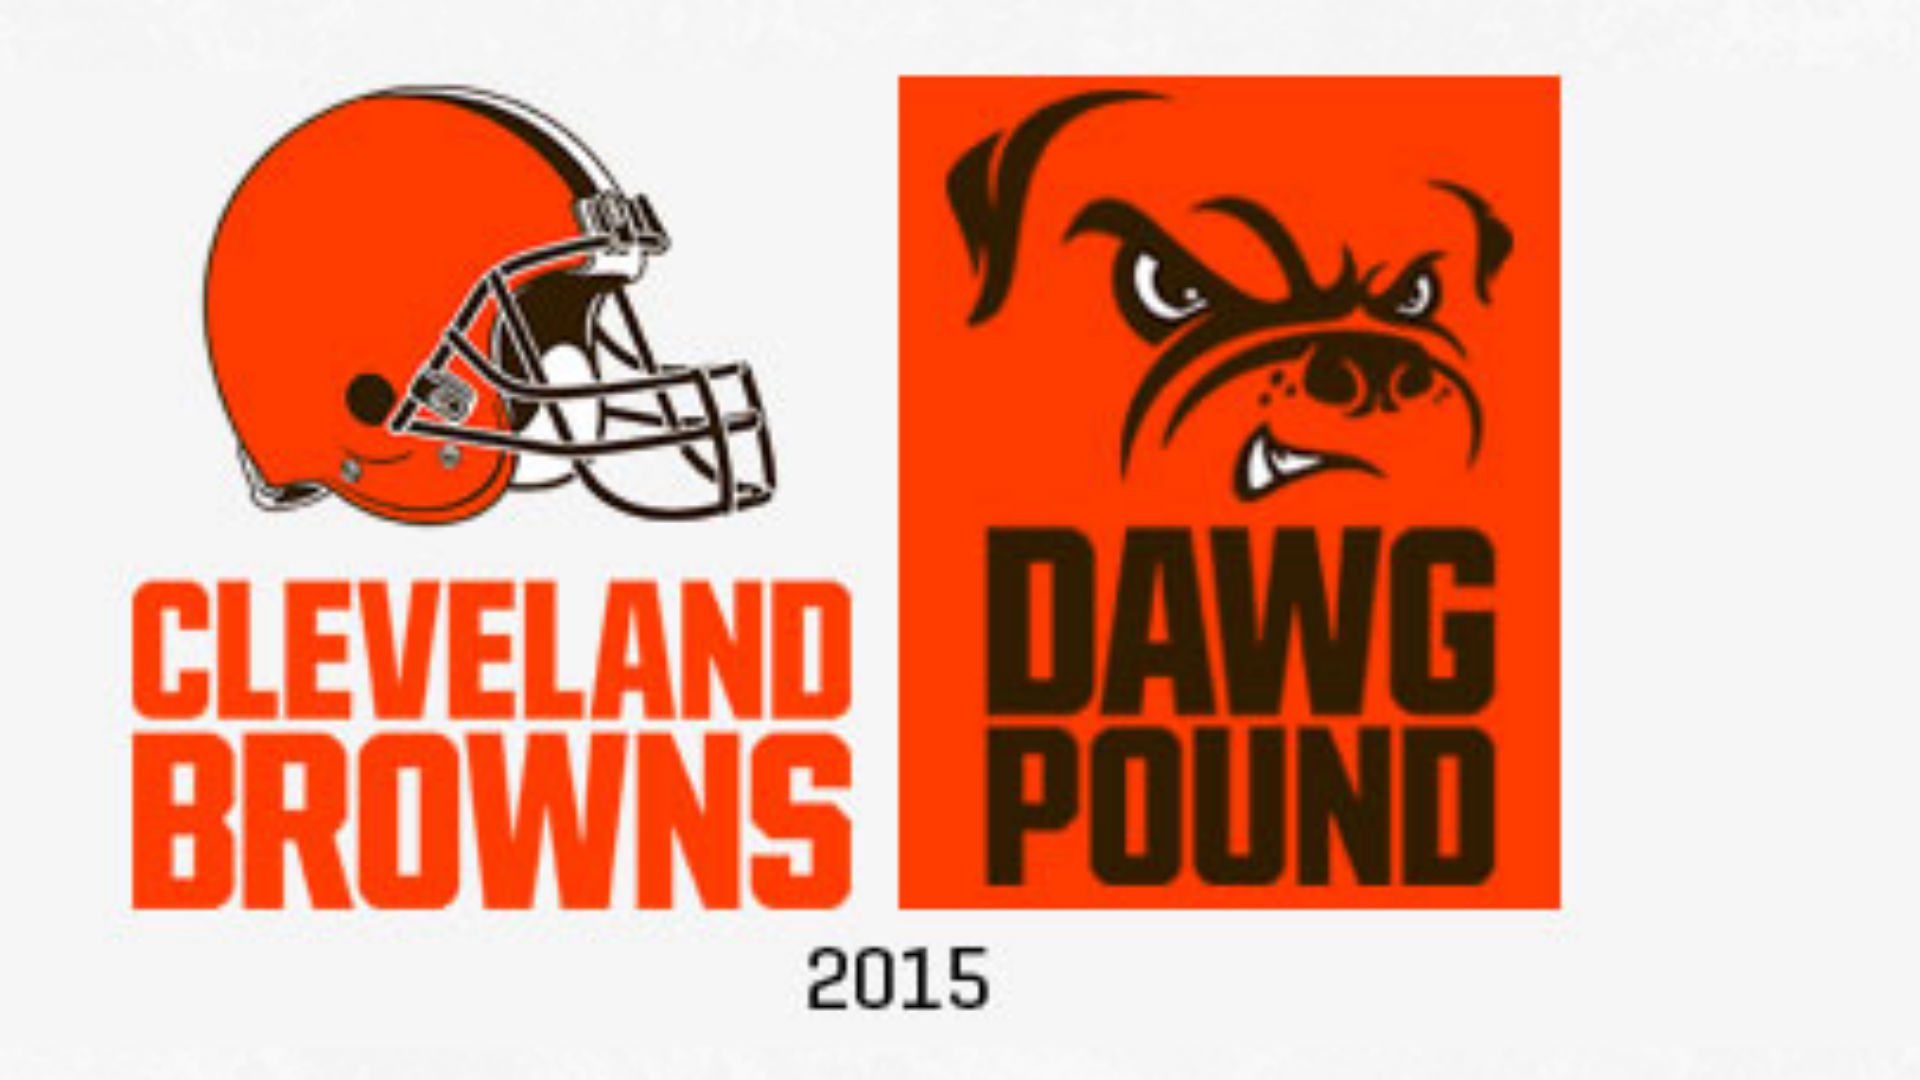 New Cleveland Browns Logo